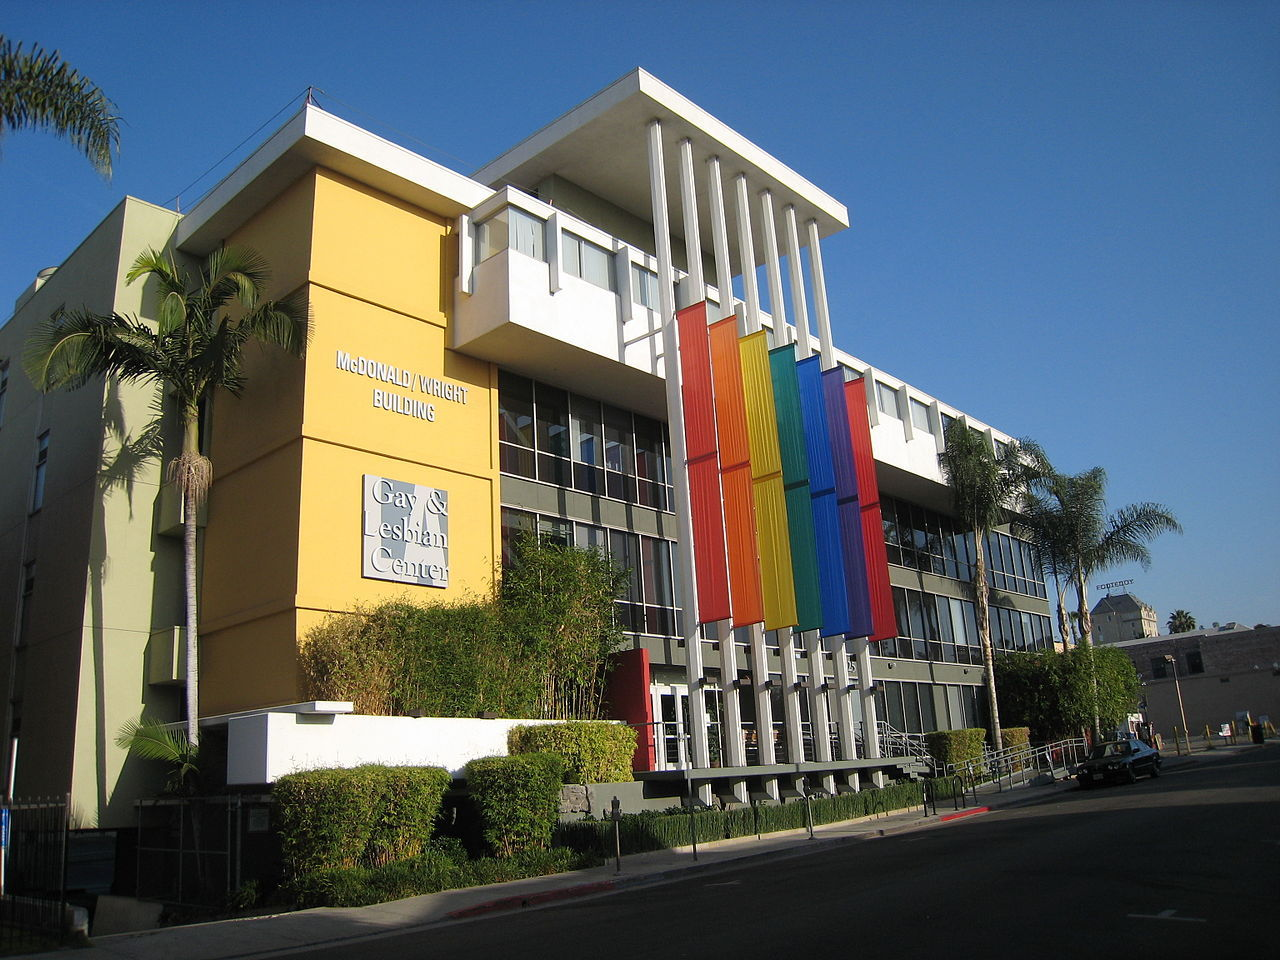 Gay and lesbian center los angeles